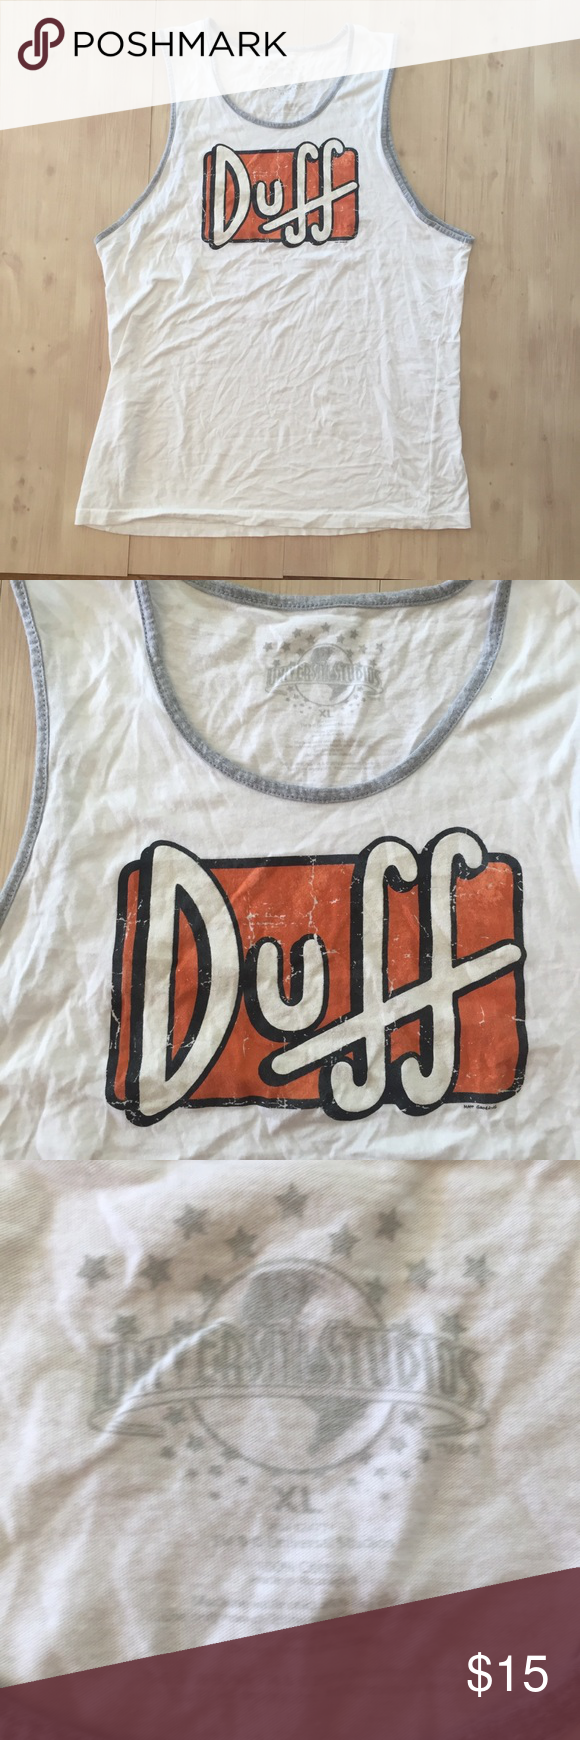 ce9c510f71639 Duff Beer The Simpsons Official Men Tank Top Sz XL Universal Studios The Simpsons  official Duff